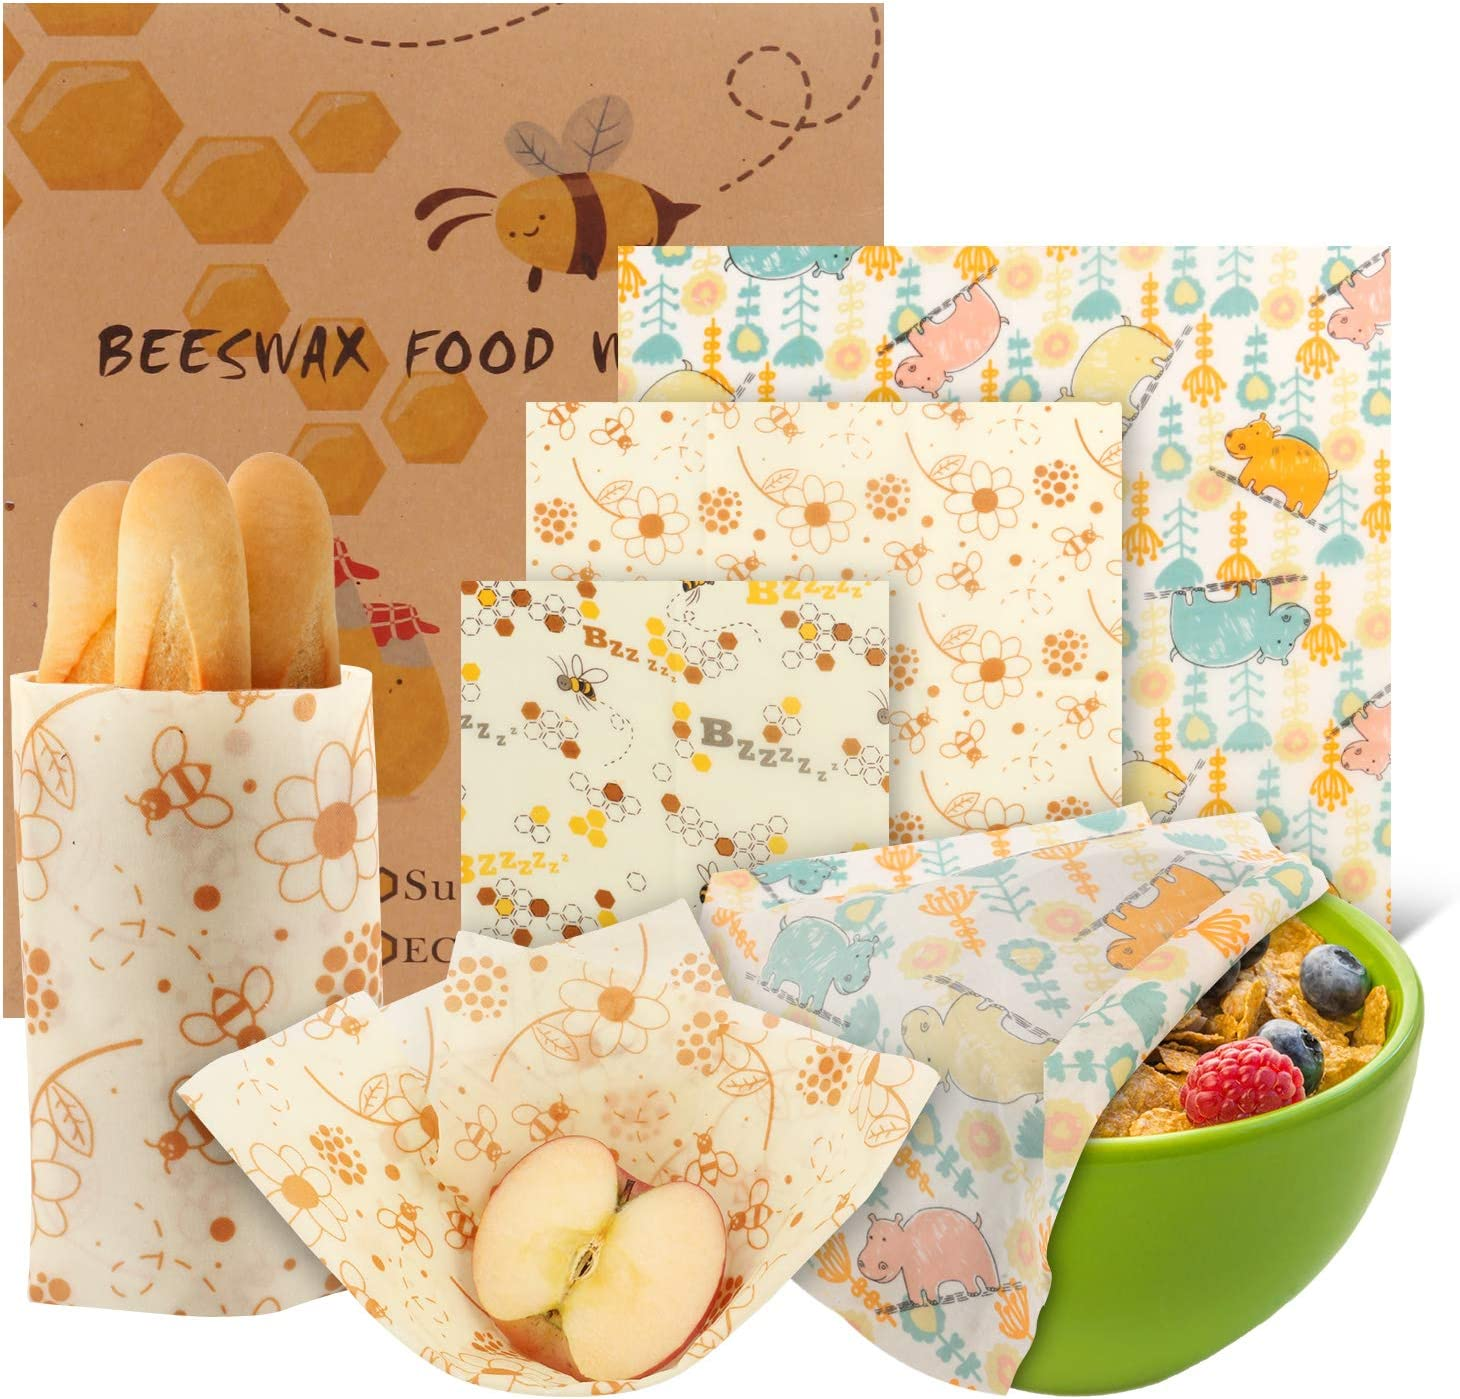 Beeswax reusable food wraps Pack of 6, Zero Waste, Eco Friendly, Plastic Free, Sustainable, Food Storage, Washable Bees Wax Food Storage Wrappers Cling Sandwich, Fresh Design Beeswax Wrapping.